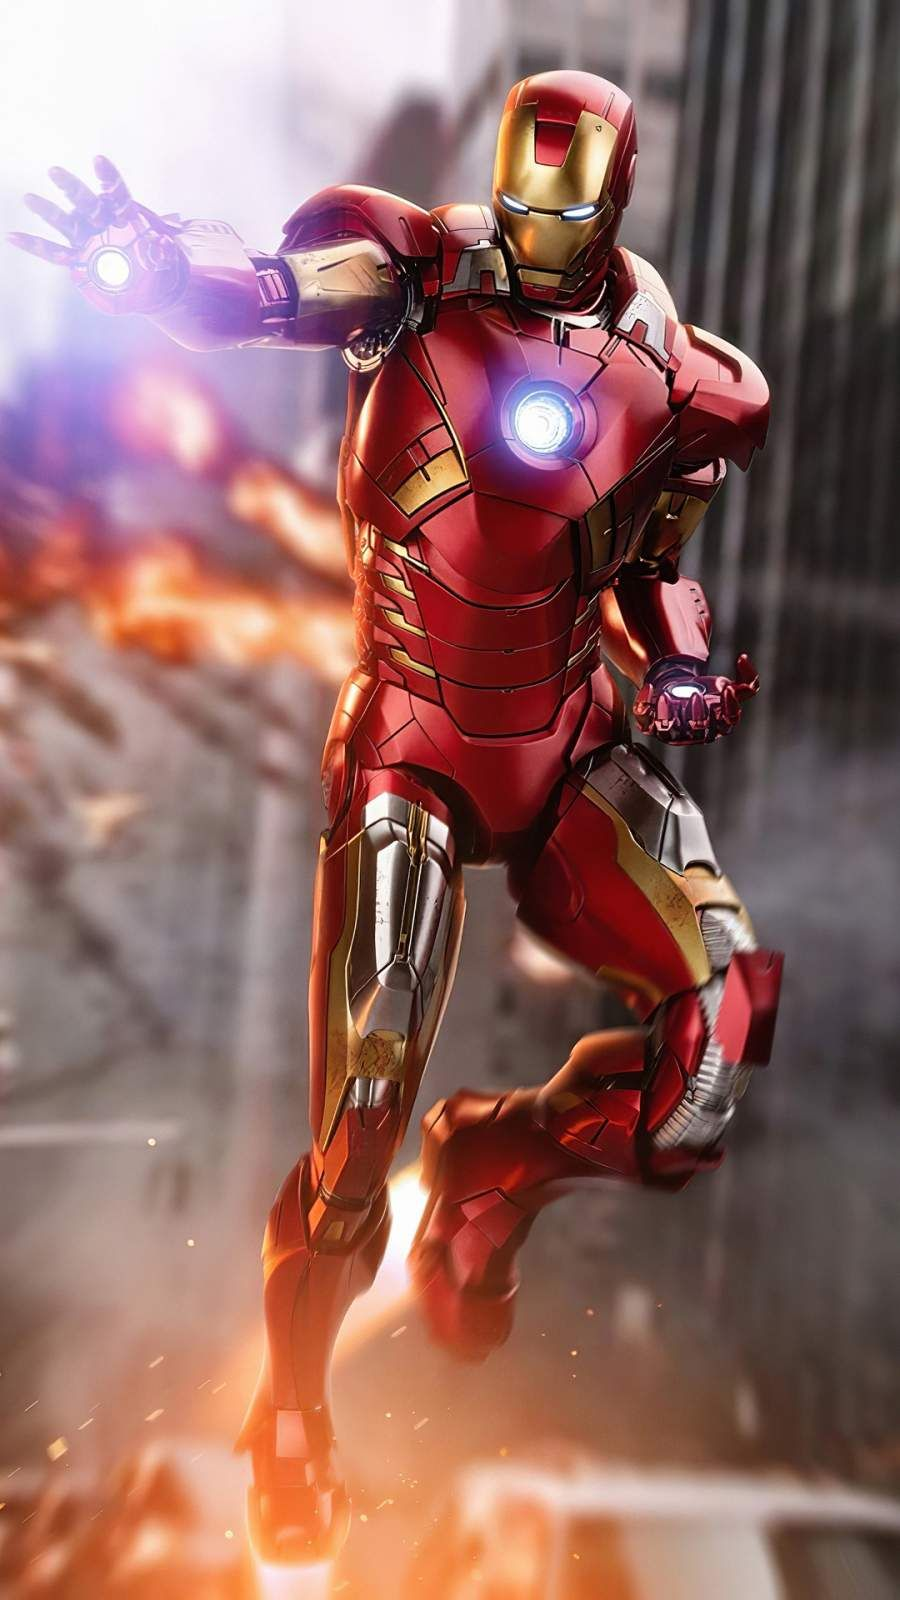 Iron Man 4k Iphone Wallpaper Iron Man Art Iron Man Wallpaper Iron Man Avengers